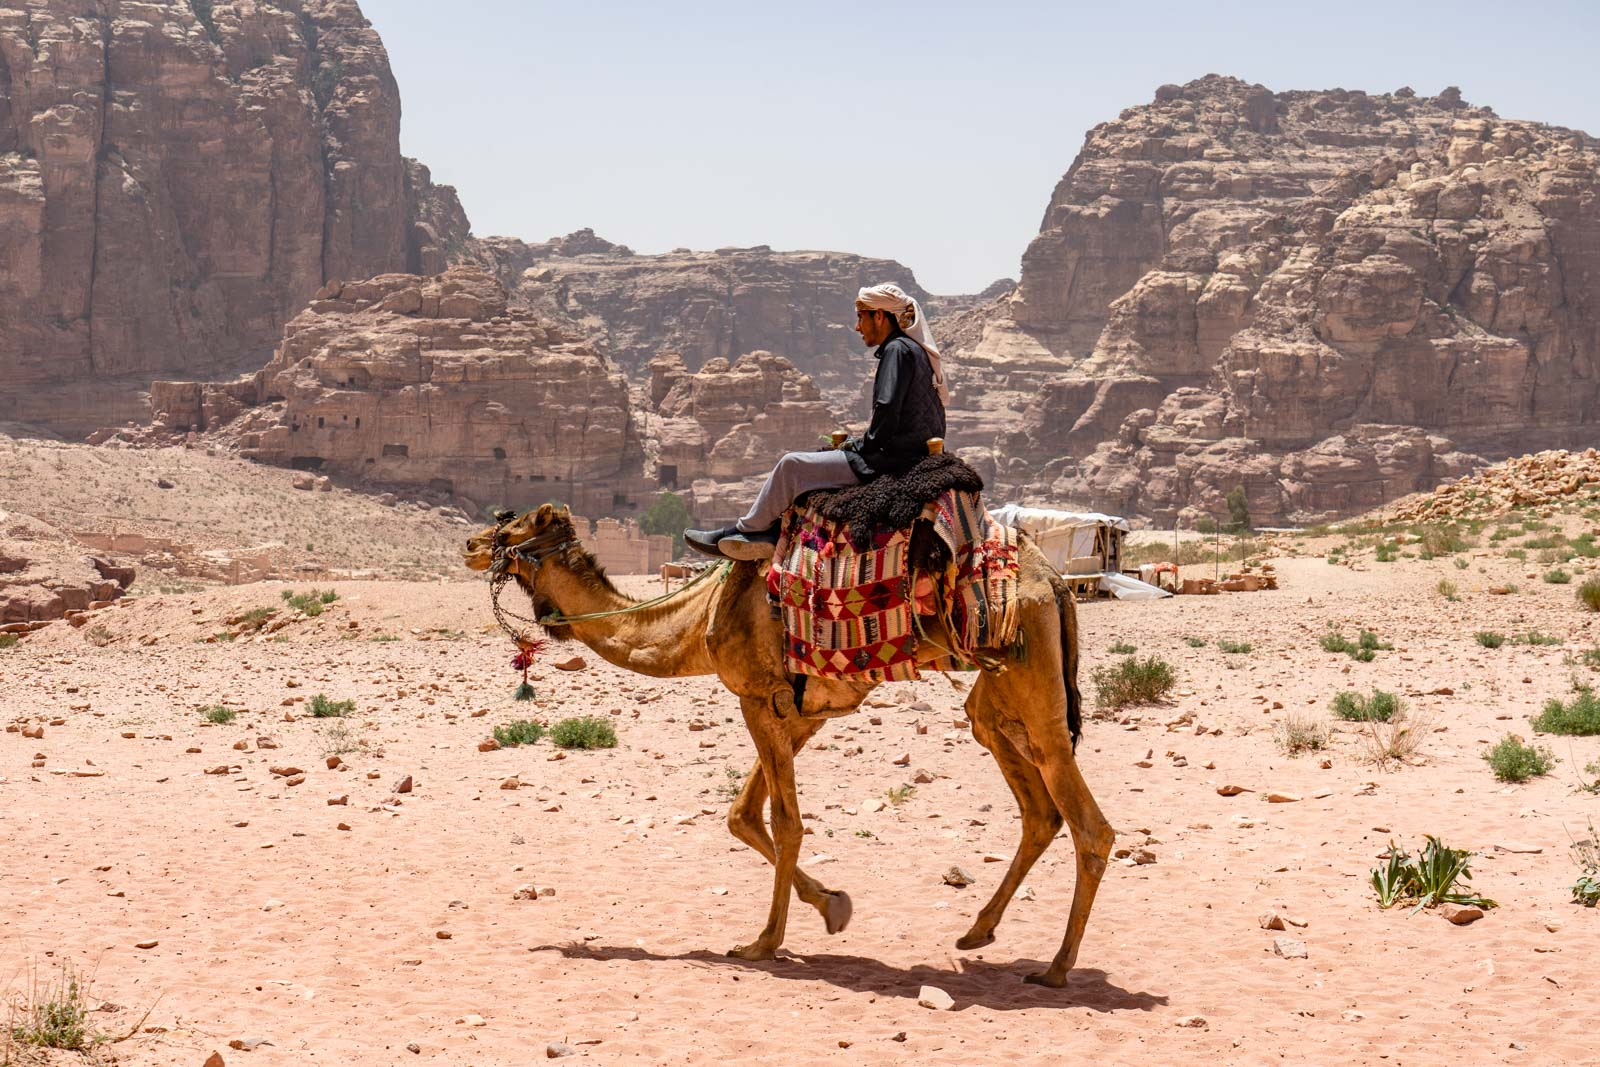 The history of Petra, Jordan